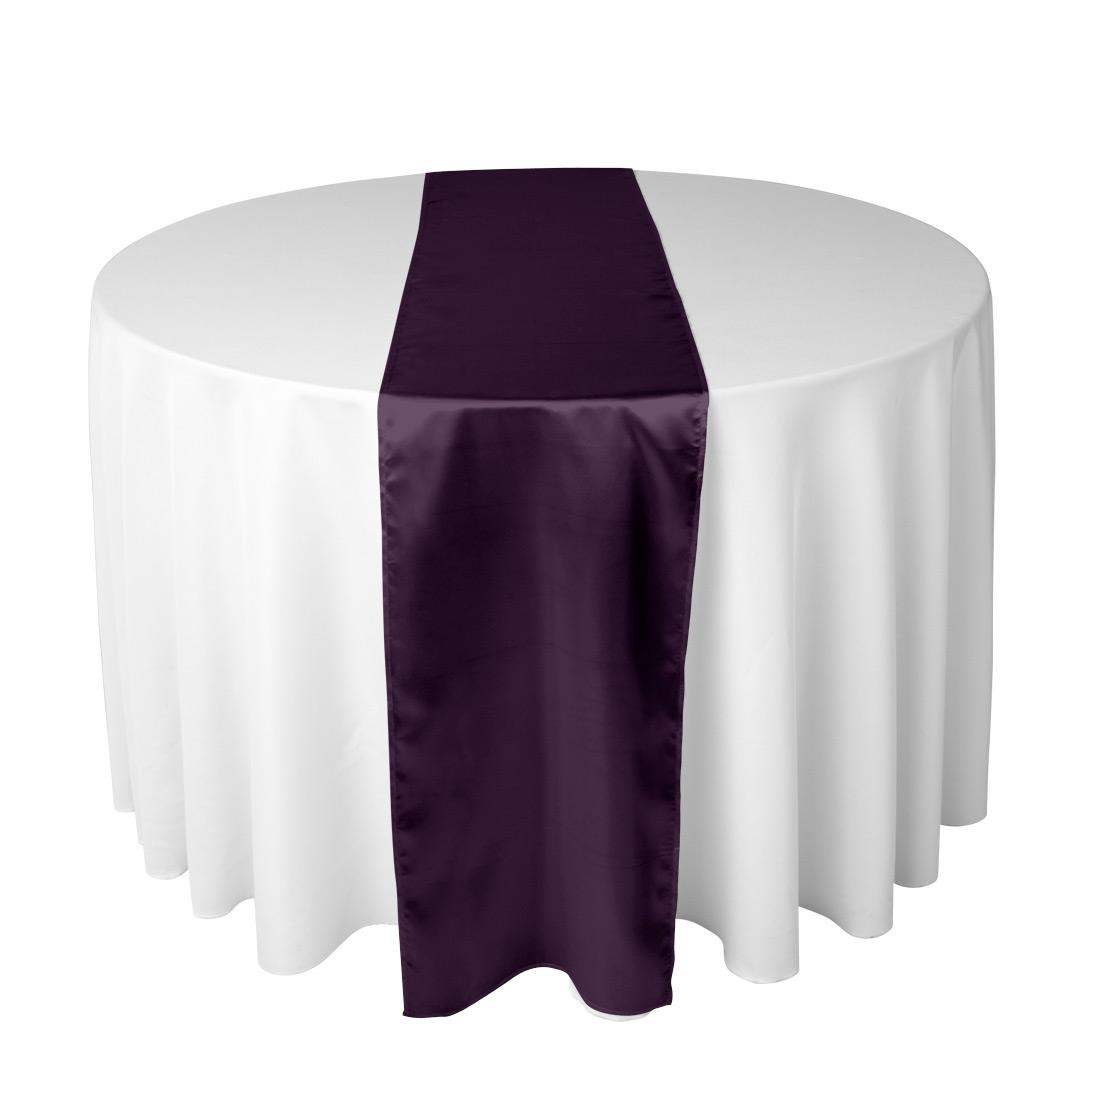 30X275CM Eggplant Satin Table Runner For Wedding Reception or Shower Dinner Party Decorations